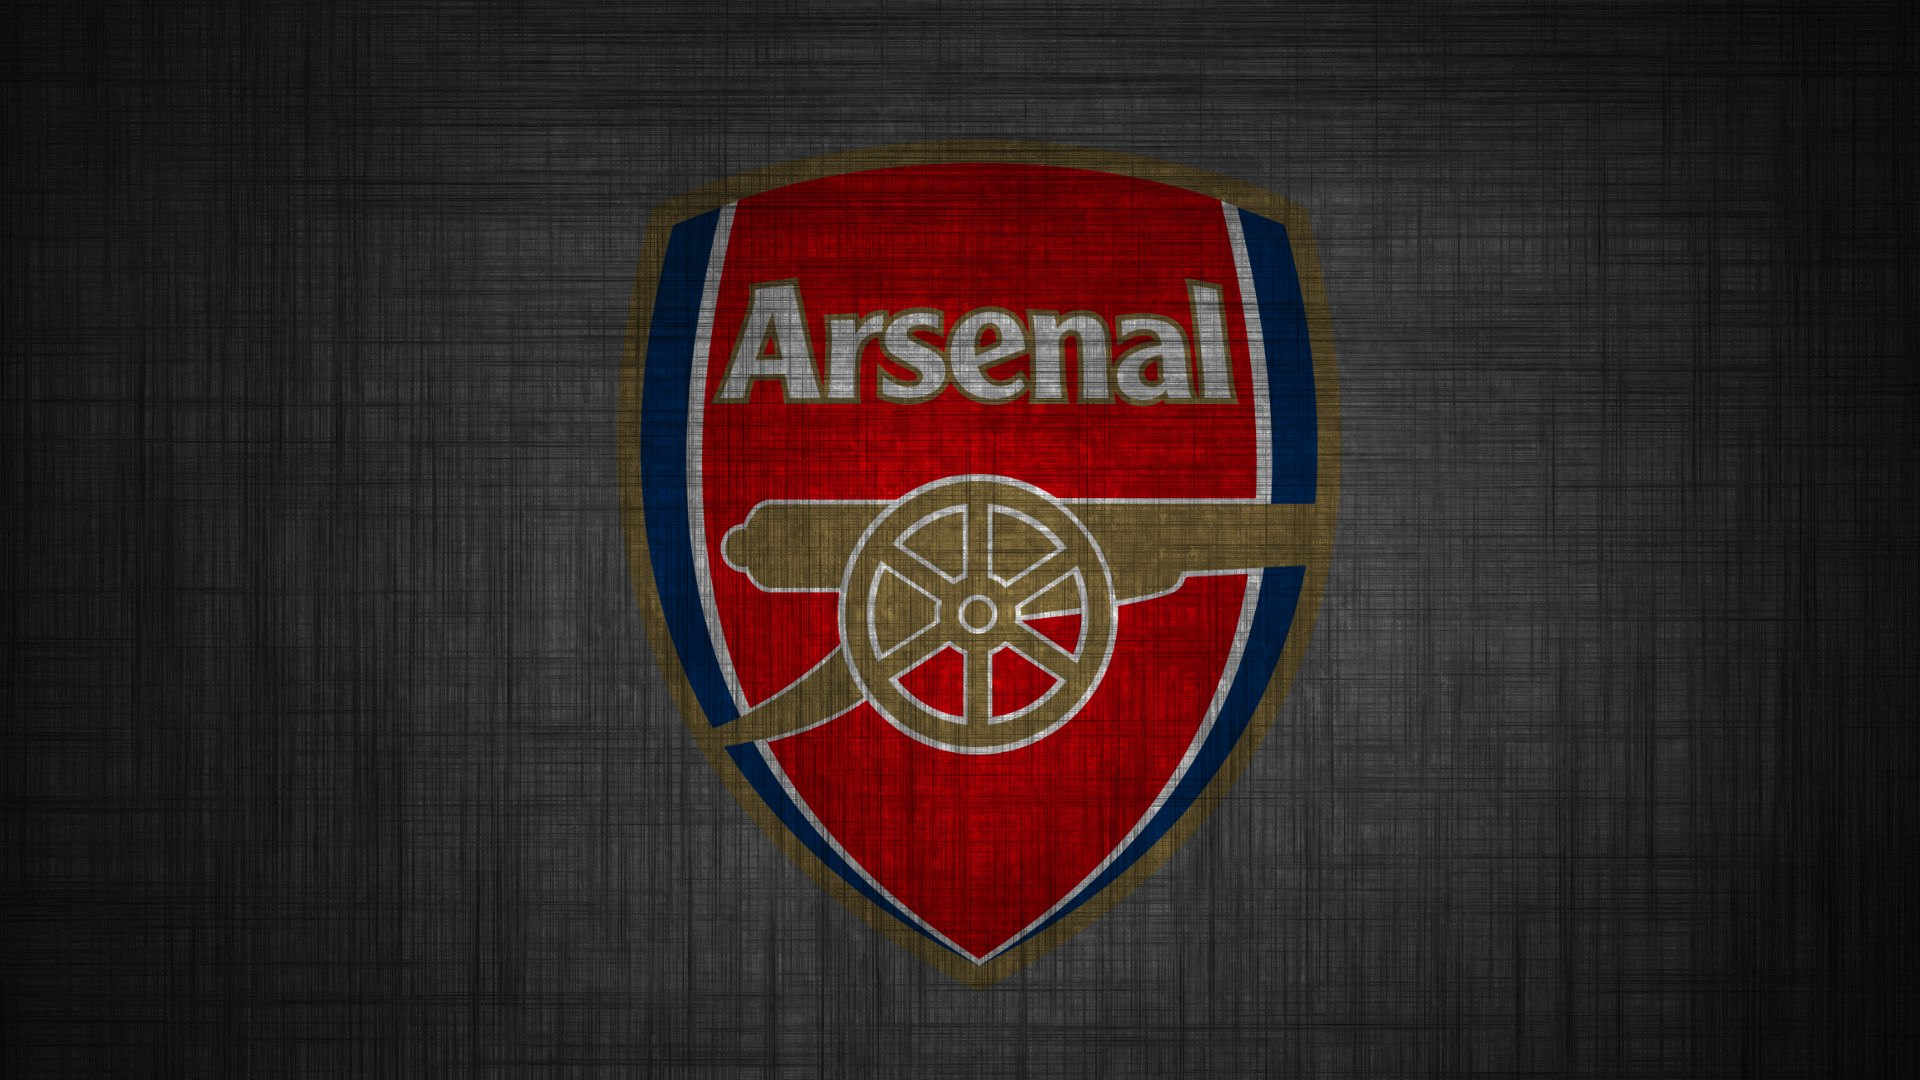 wallpaper.wiki-Desktop-Arsenal-Logo-Wallpapers-PIC-WPE0012183